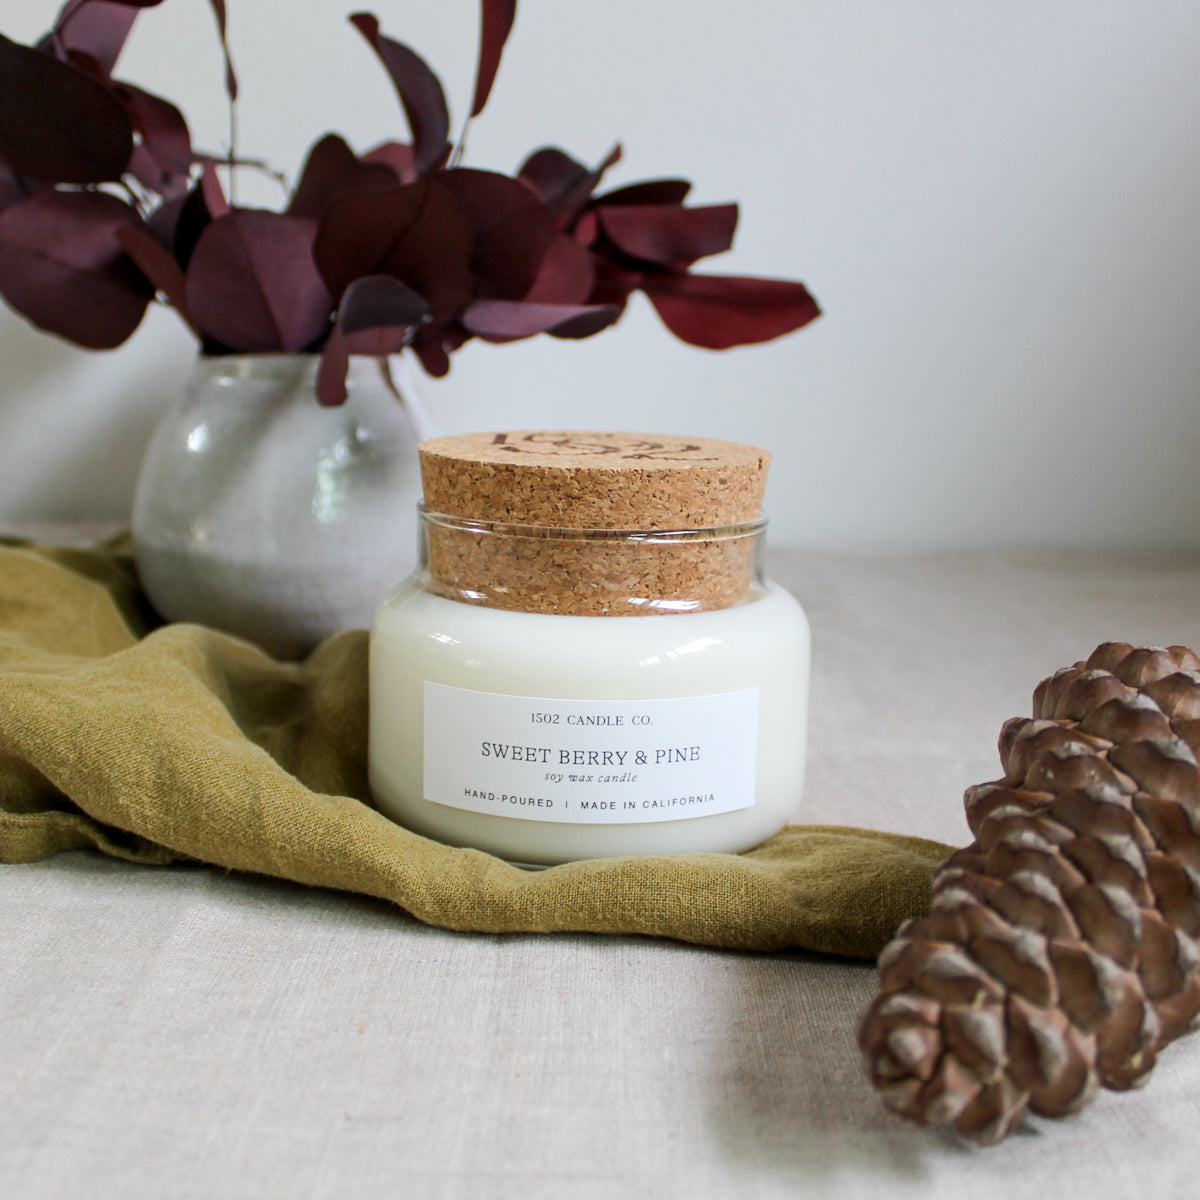 Sweet Berry & Pine holiday candle.